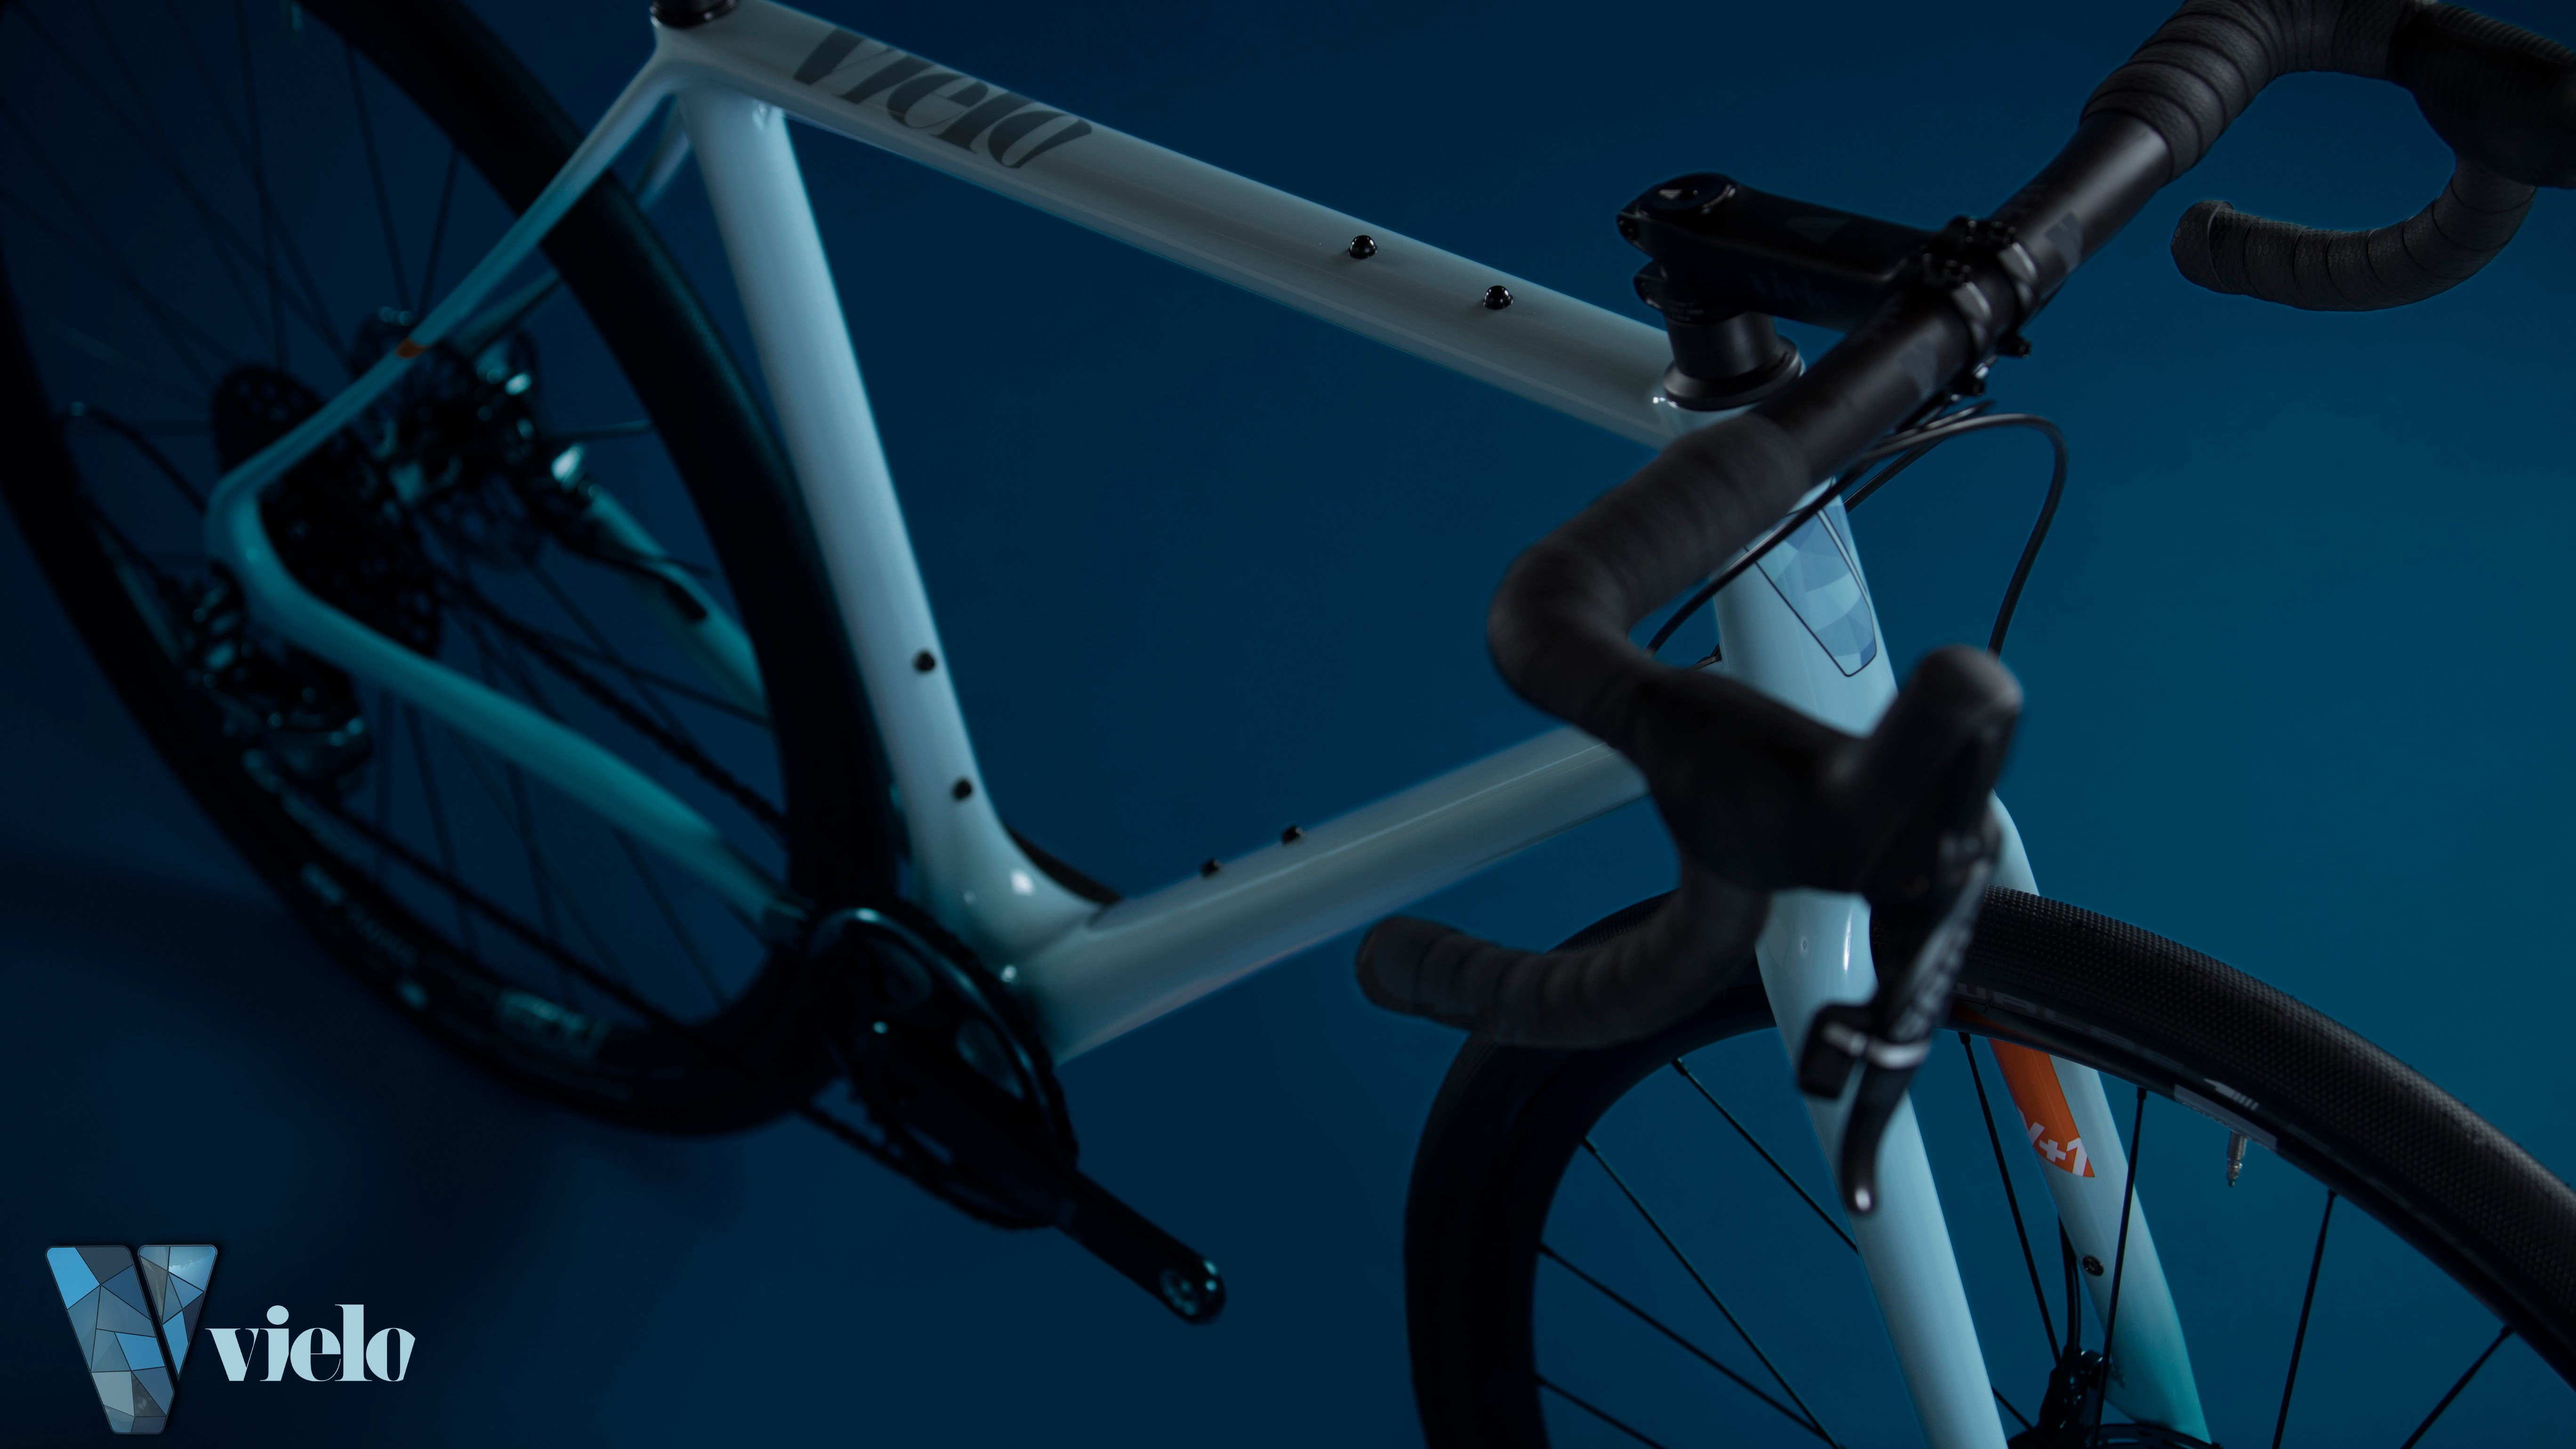 The bosses on the top tube are a clue to the V+1's practical leanings